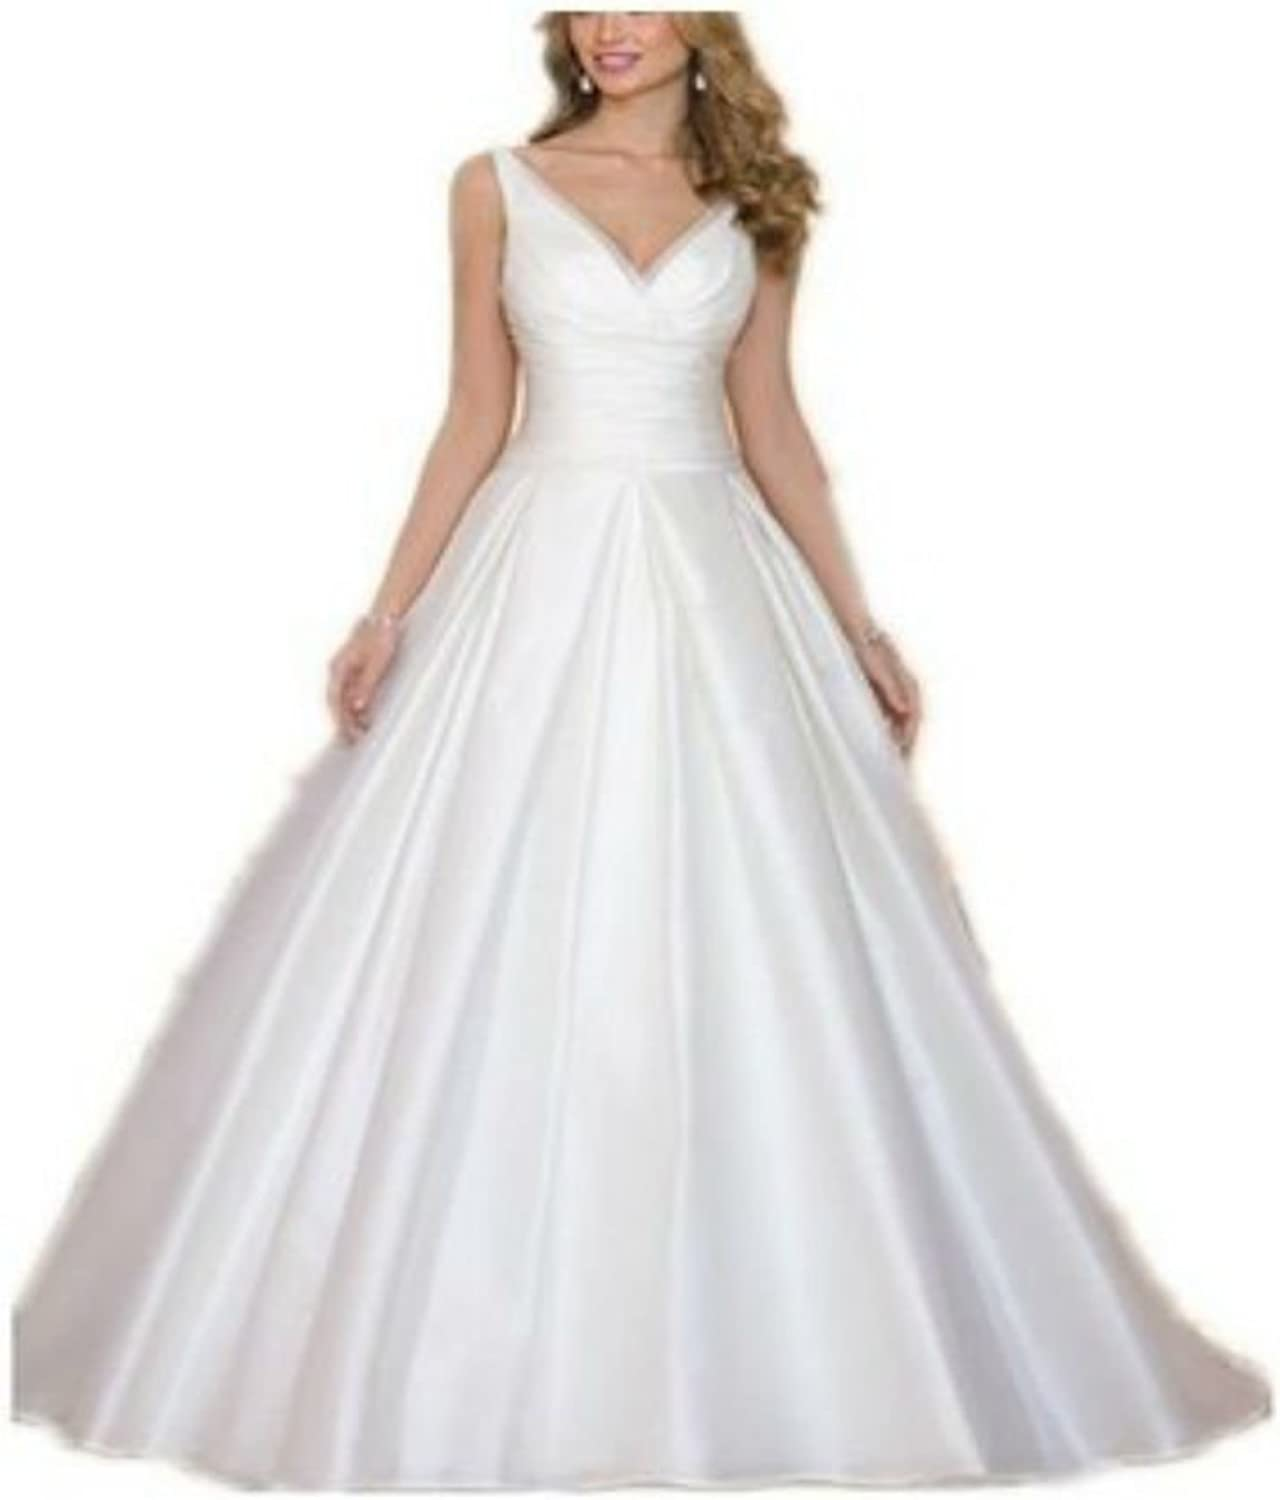 Yilian VNeck Aline Organza Wedding Dress Bride Gown Dress